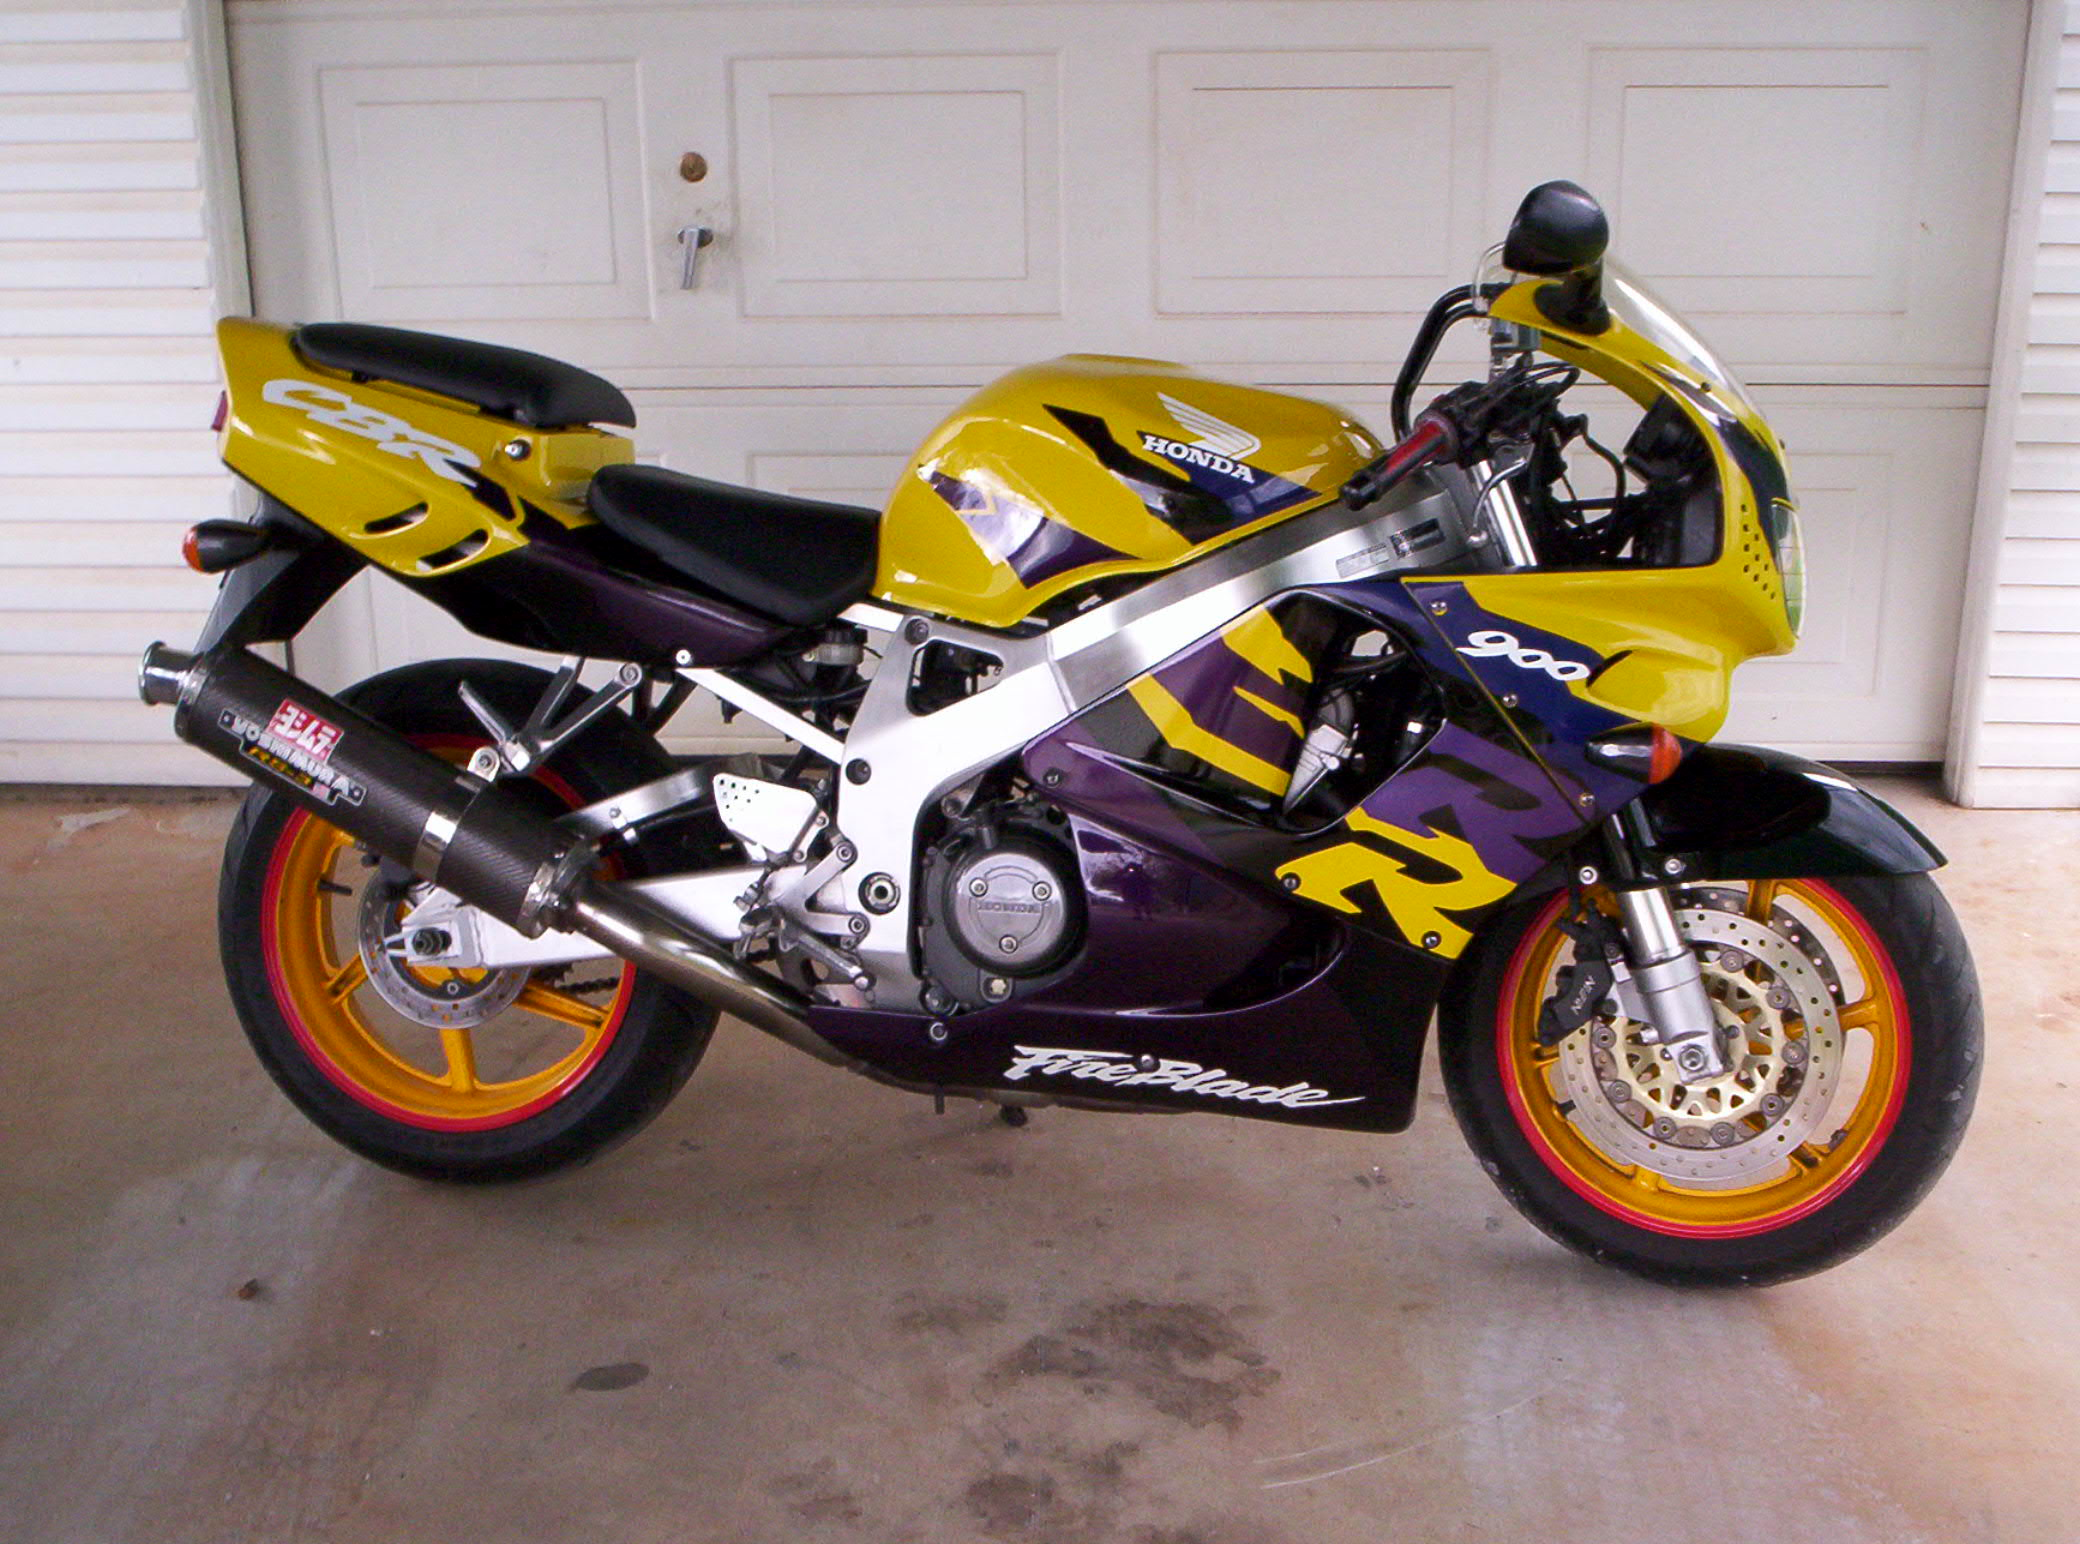 Click image for larger version  Name:bike for sale 006.jpg Views:10 Size:462.5 KB ID:26054